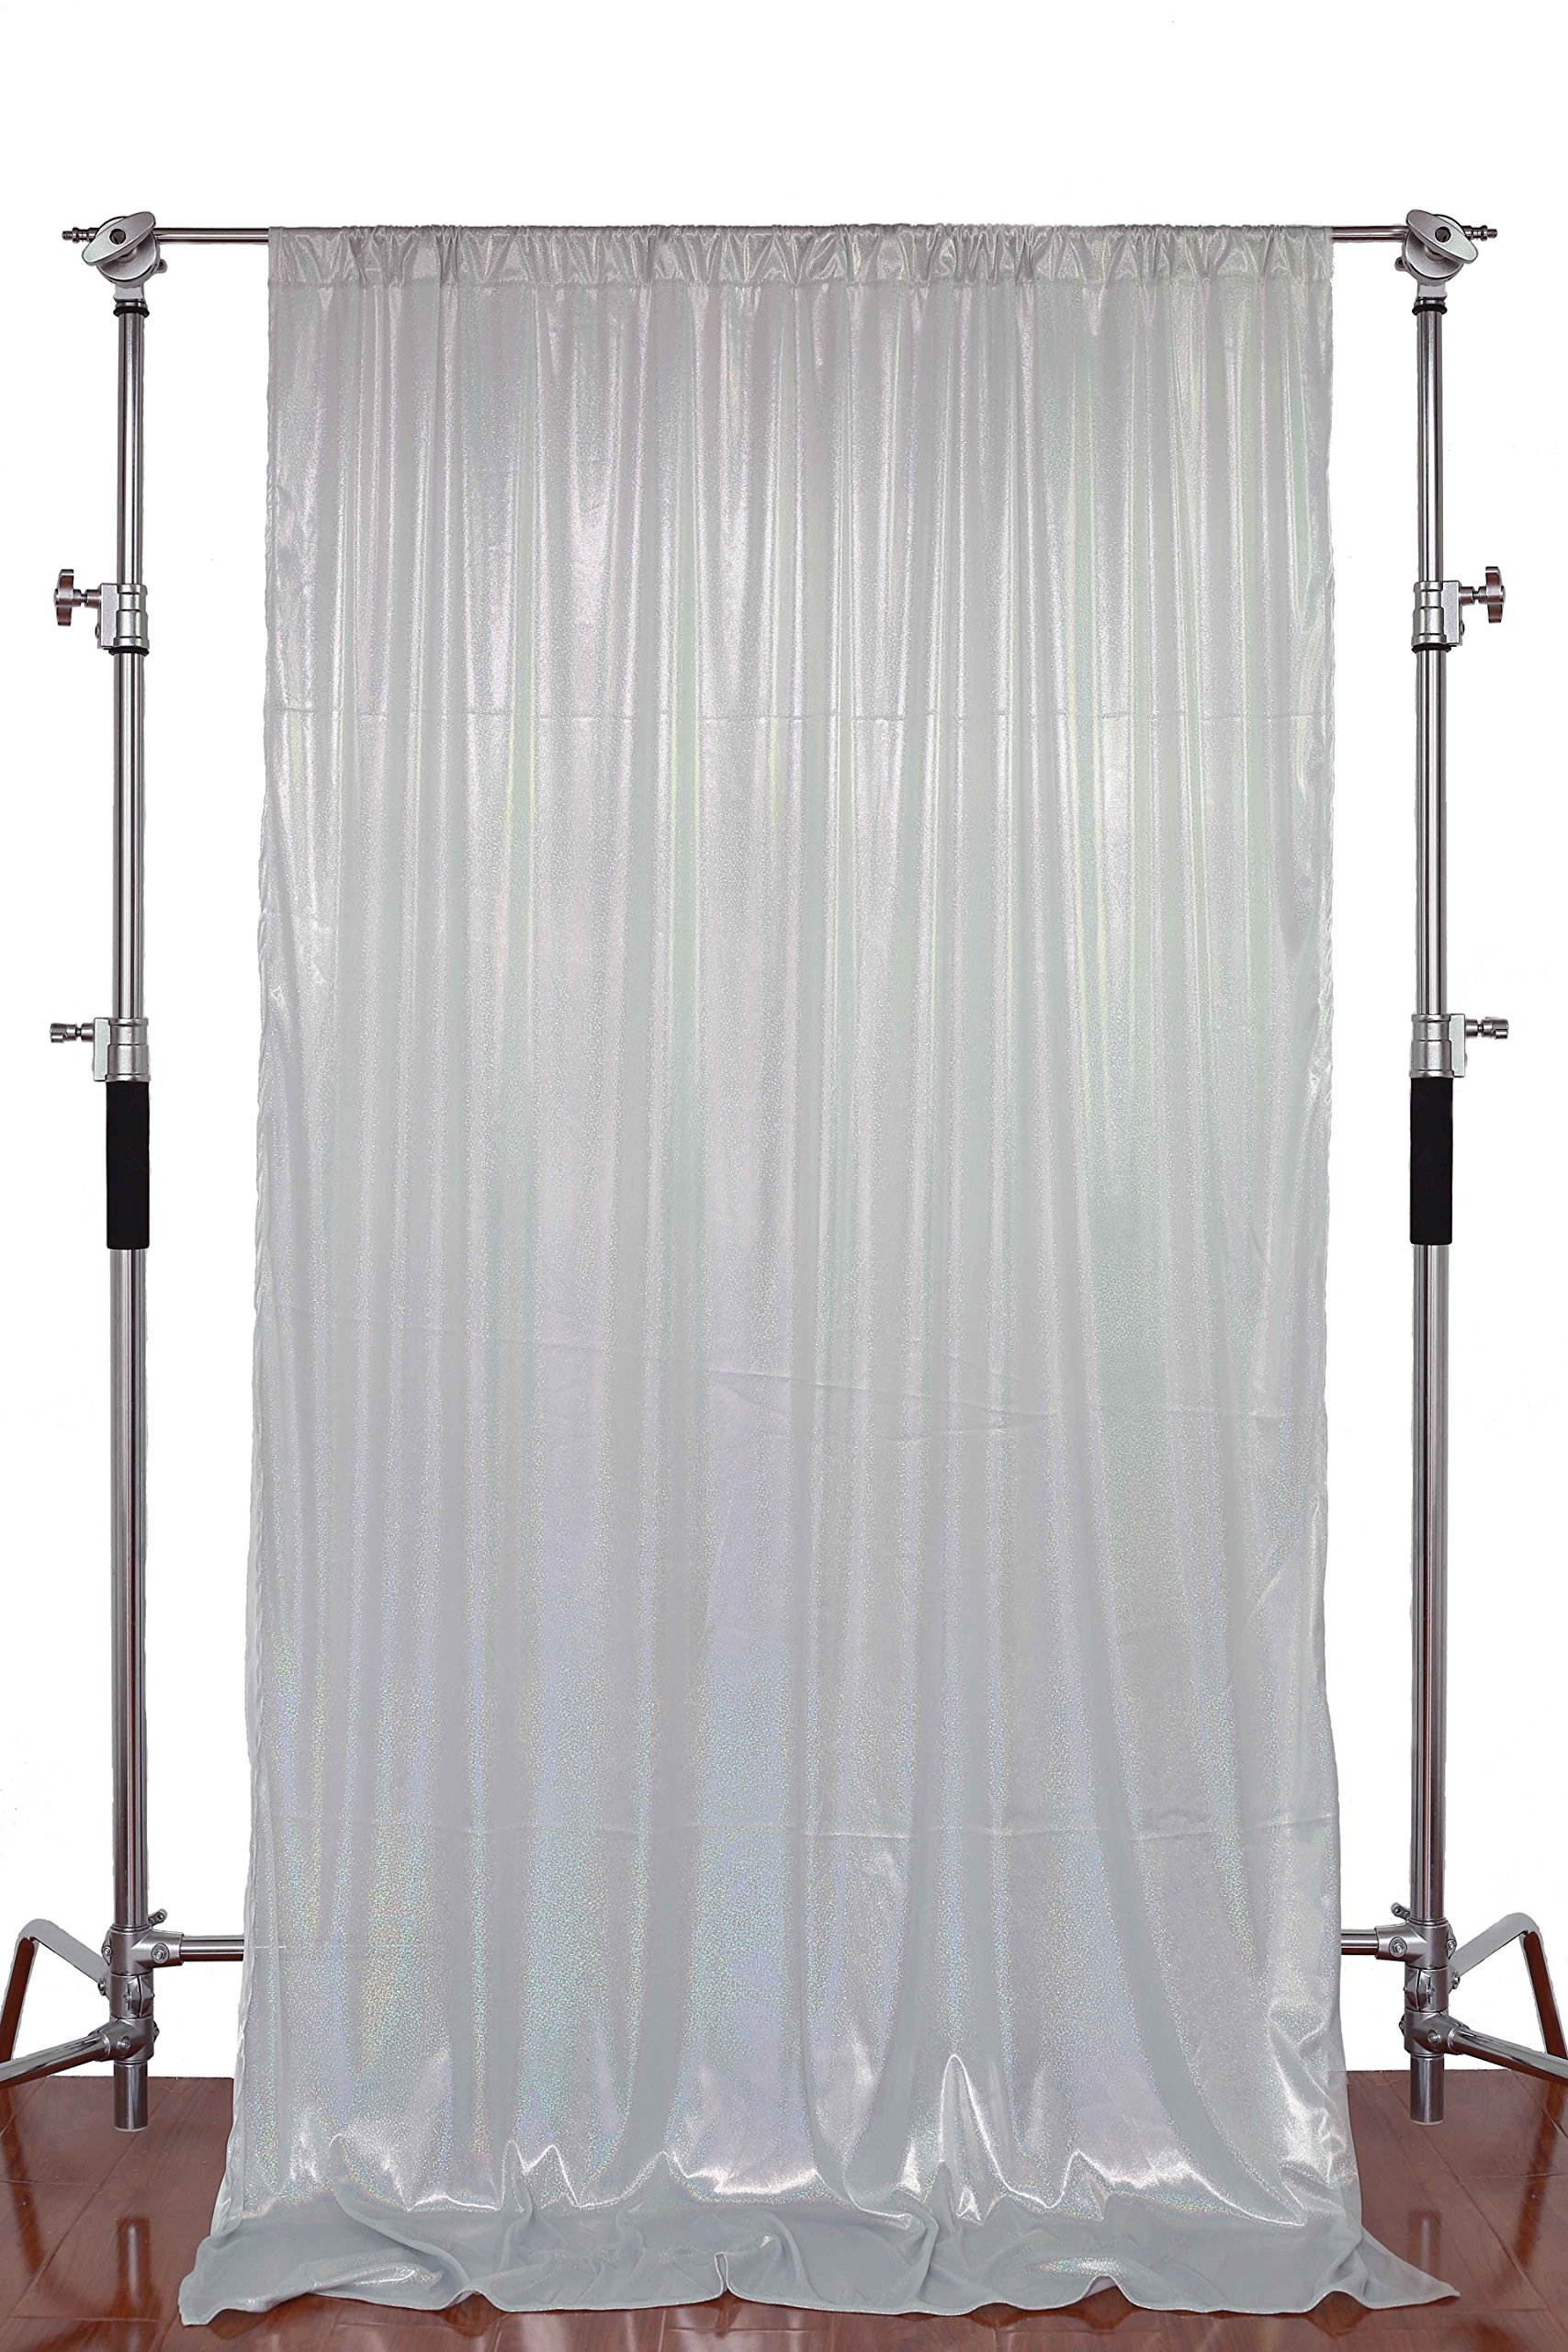 FUERMOR Background 5x7ft Silver Cloth Photography Backdrop Curtain Party Decoration Photo Video Shooting Props FUTJ002